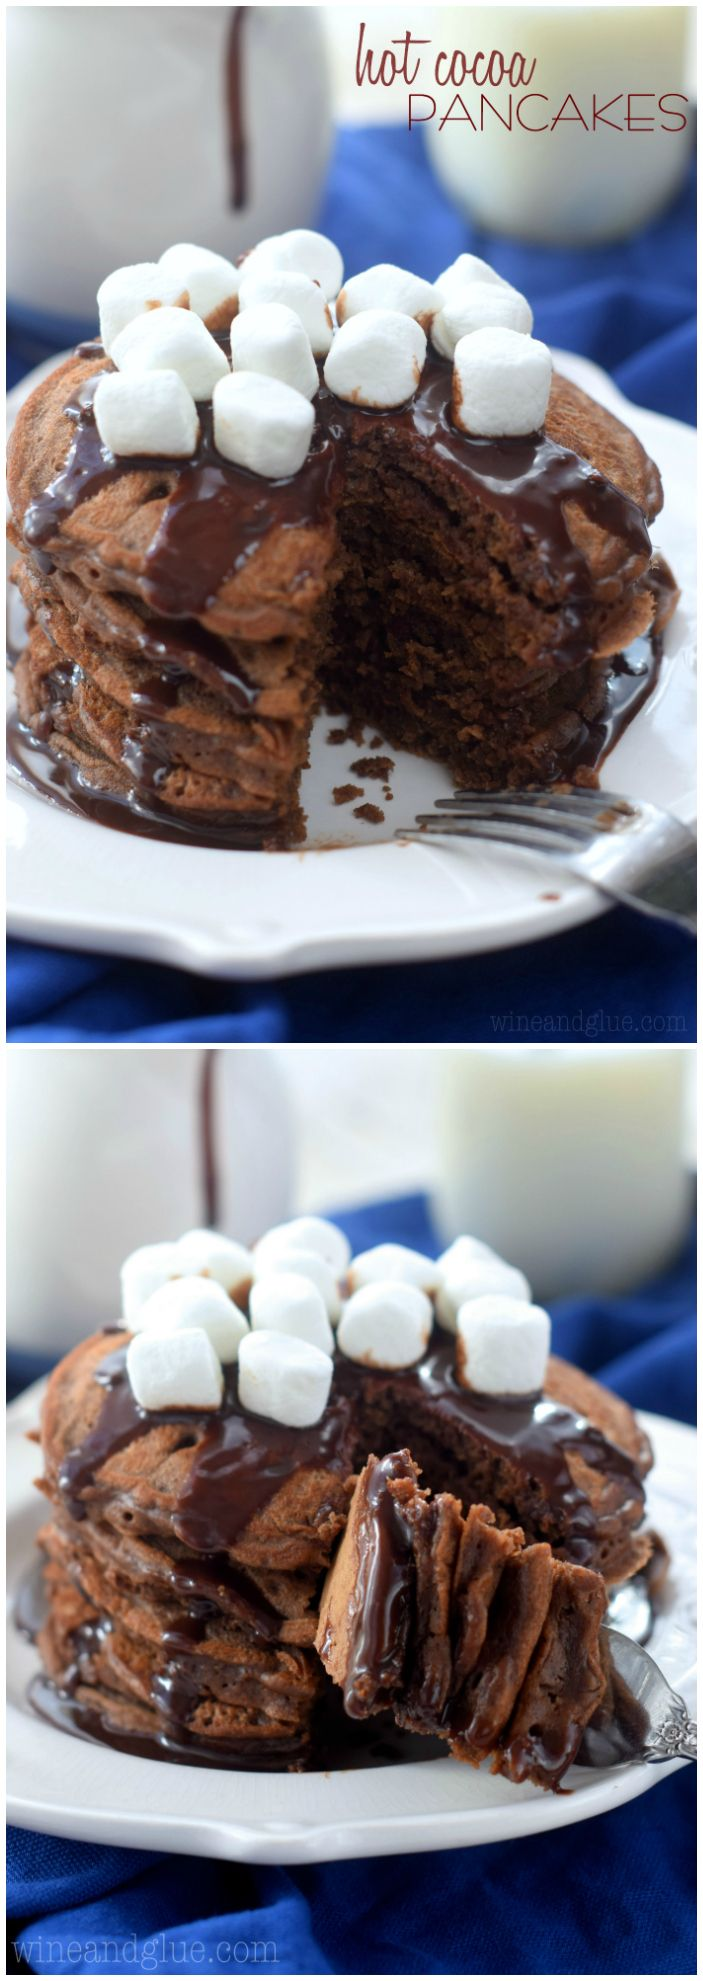 These Hot Cocoa Pancakes are a cocoa lover's dream! Perfect for a holiday breakfast or any Sunday!: